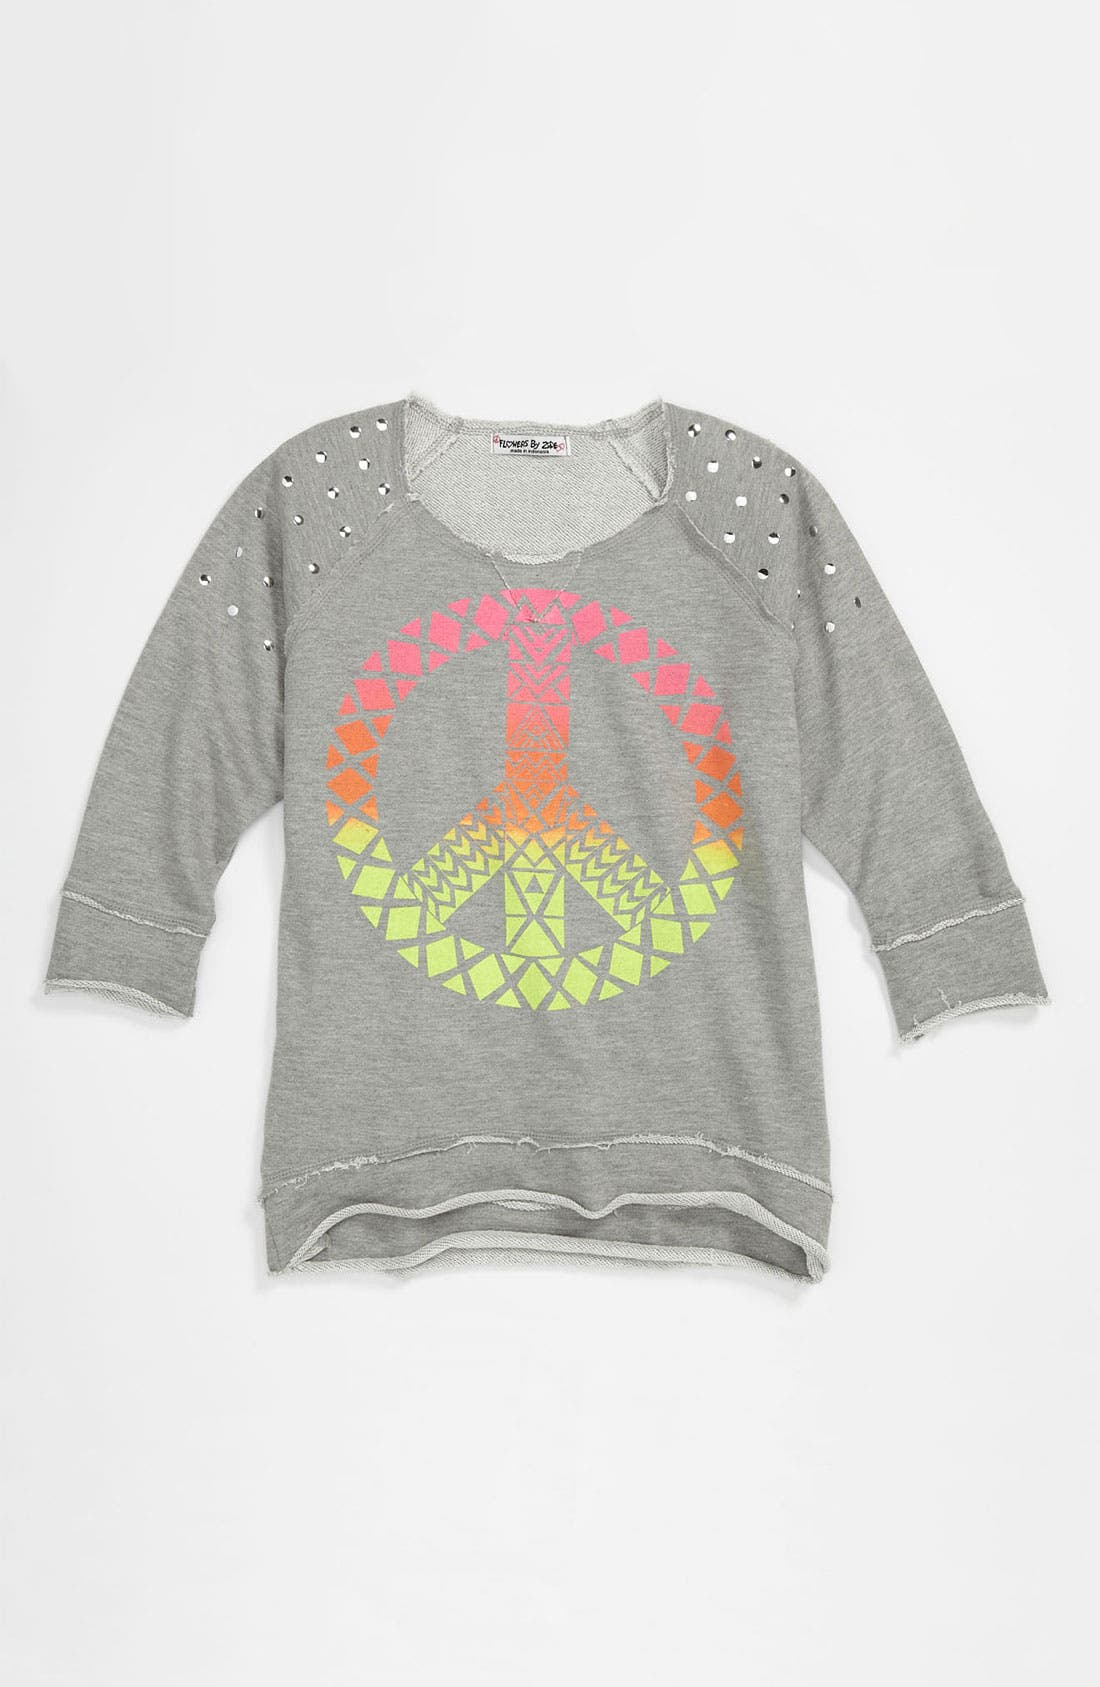 Alternate Image 1 Selected - Flowers by Zoe 'Peace' Sweatshirt (Big Girls)